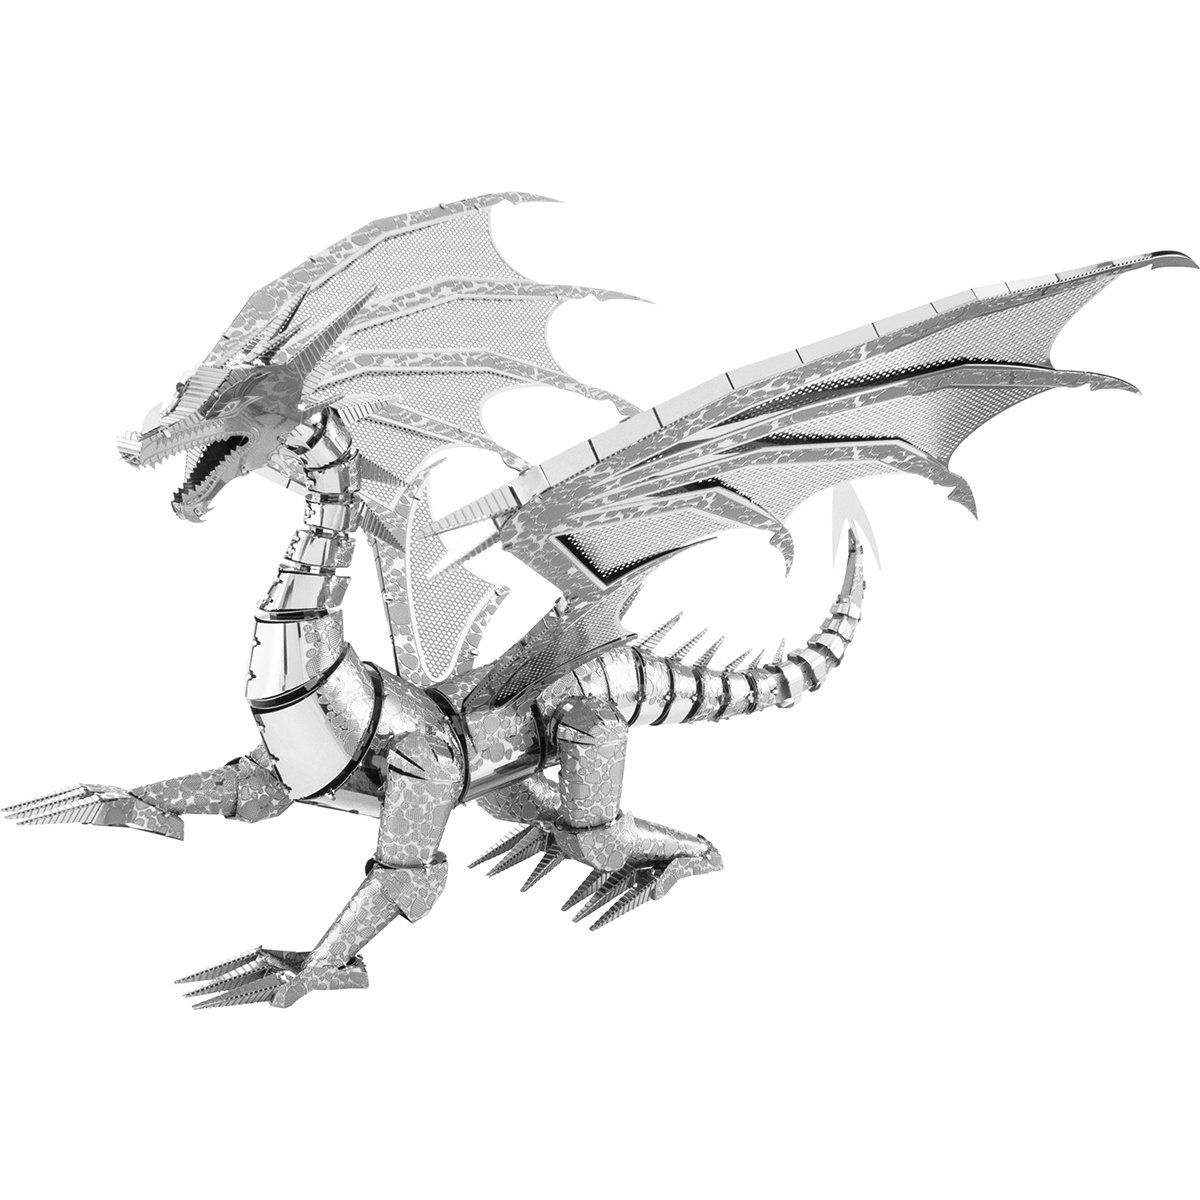 Fascinations Metal Earth ICONX Silver Dragon 3D Metal Model Kit by Fascinations